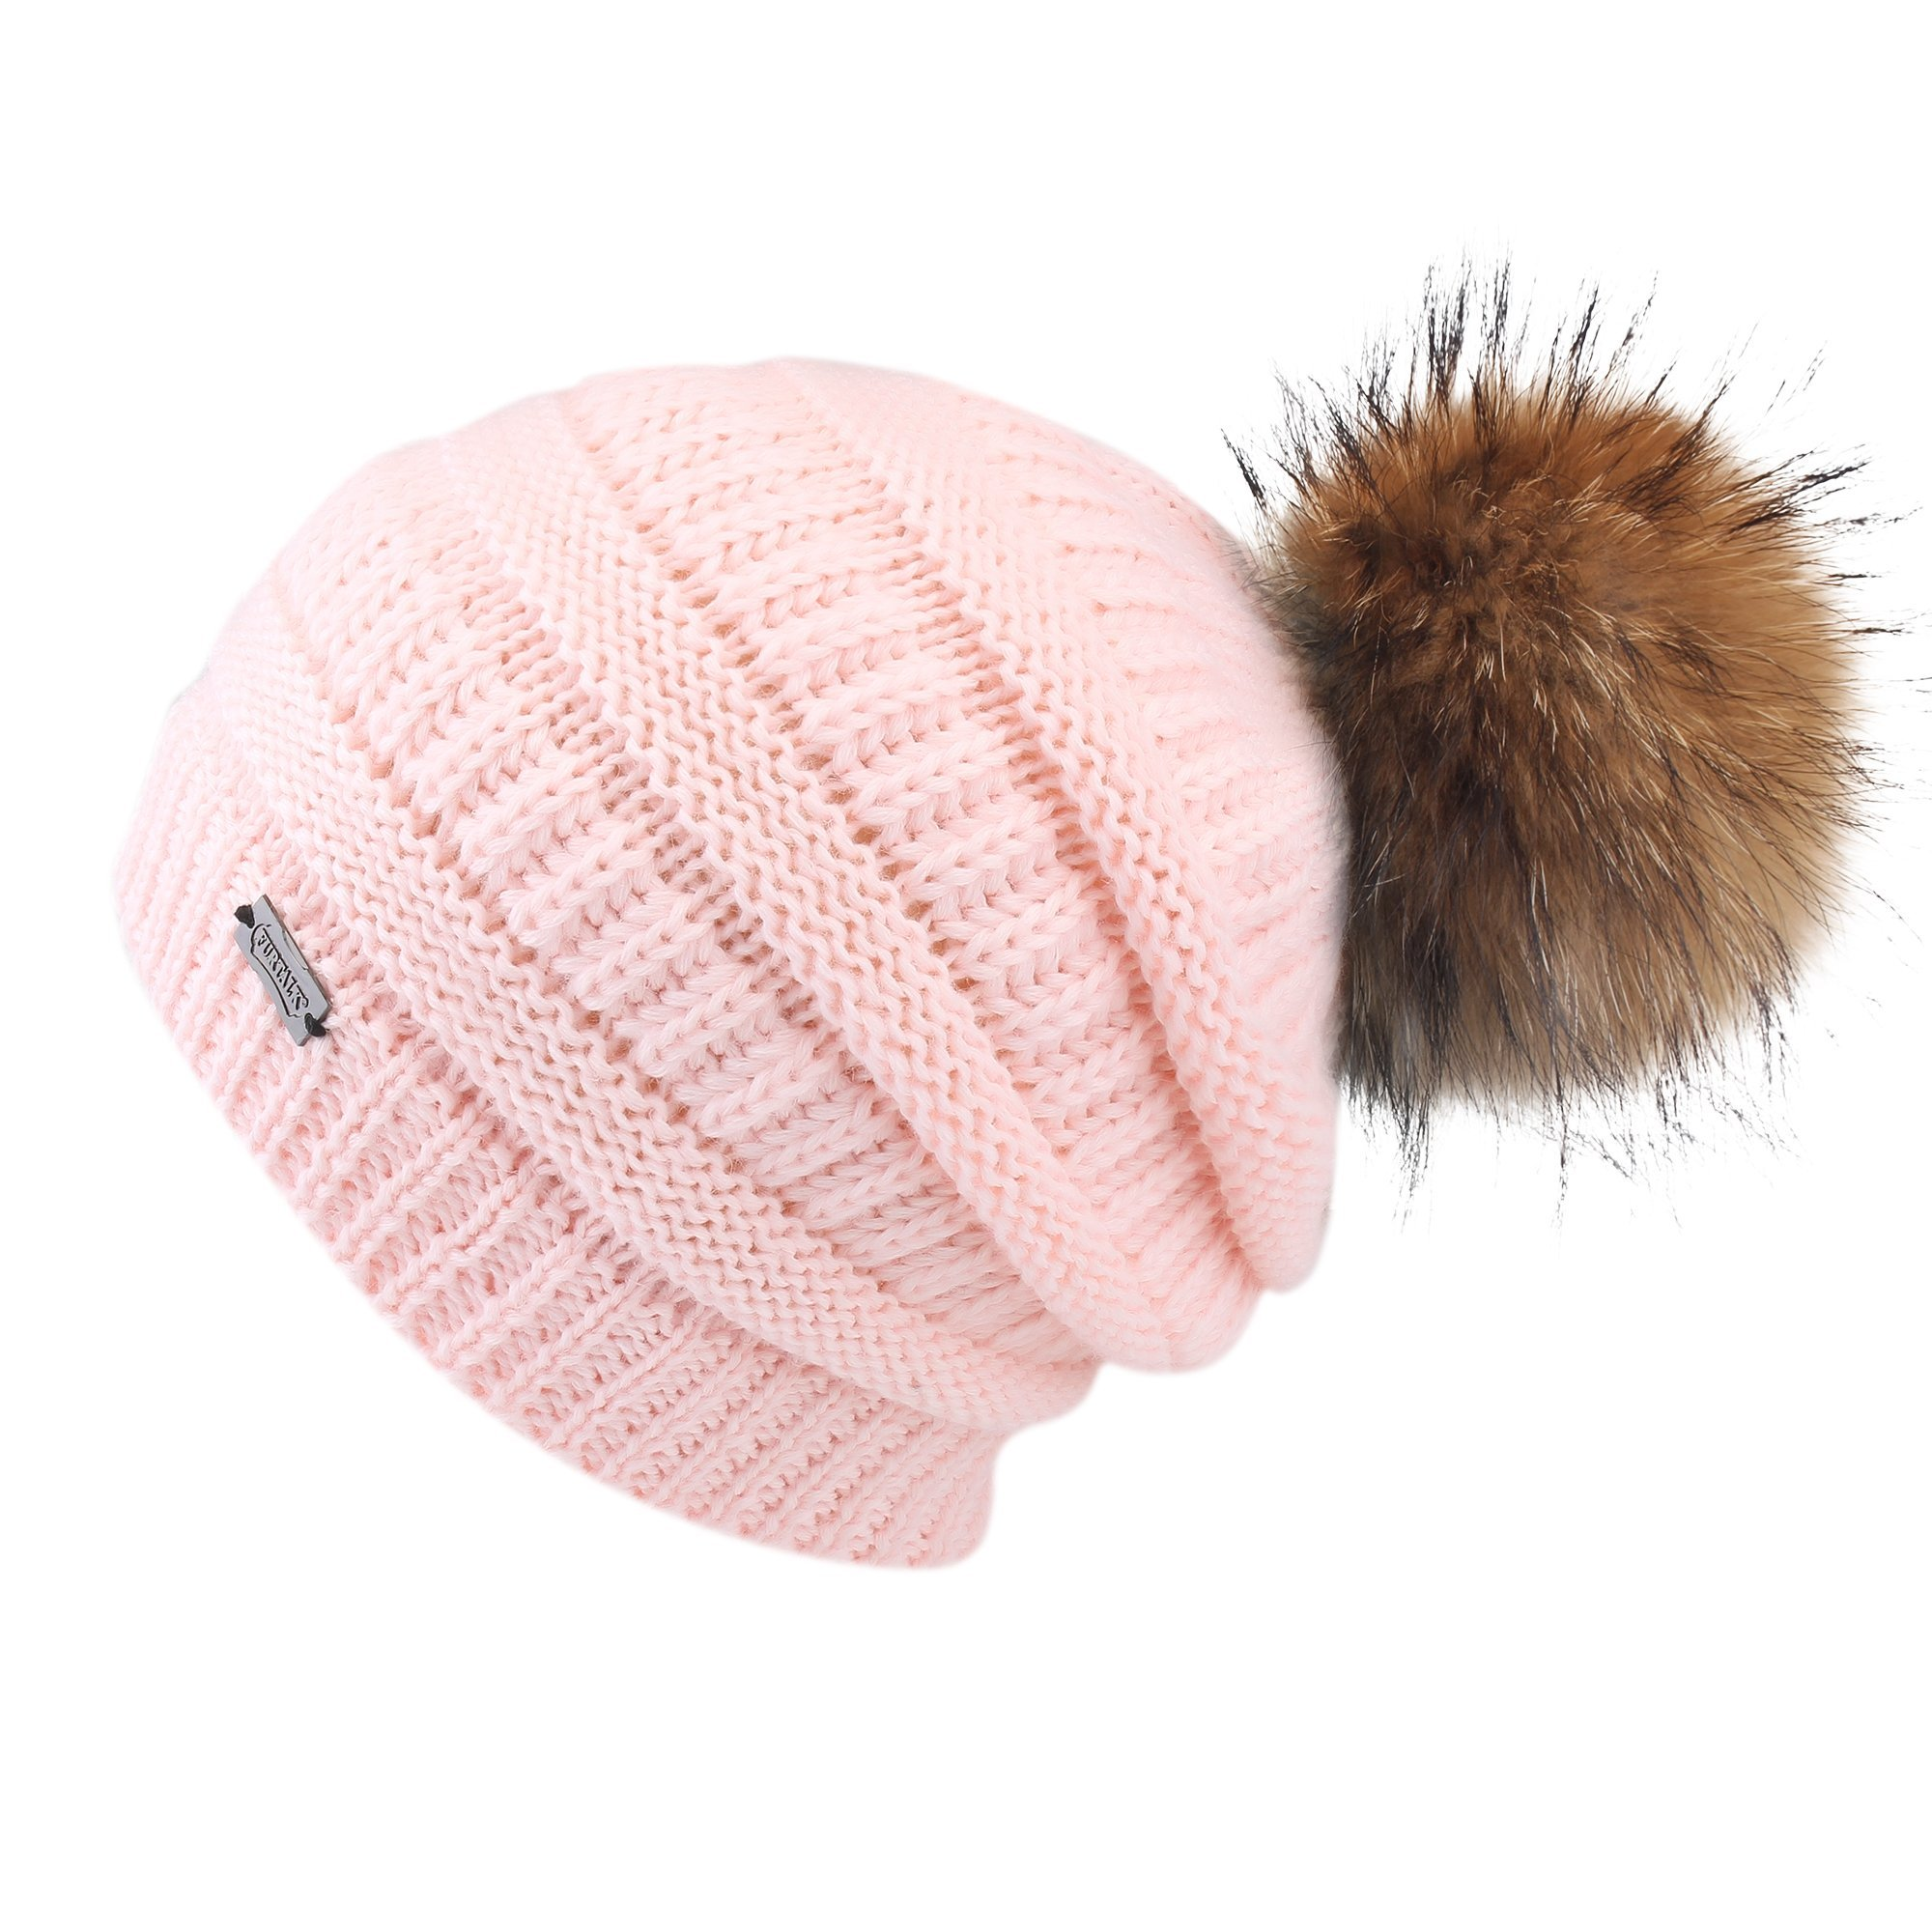 FURTALK Winter Fur Pom Pom Hat - Warm Knit Slouchy Beanie Hats for Women Chunky Soft Stretch Cable Caps Original (one Size, Pink)